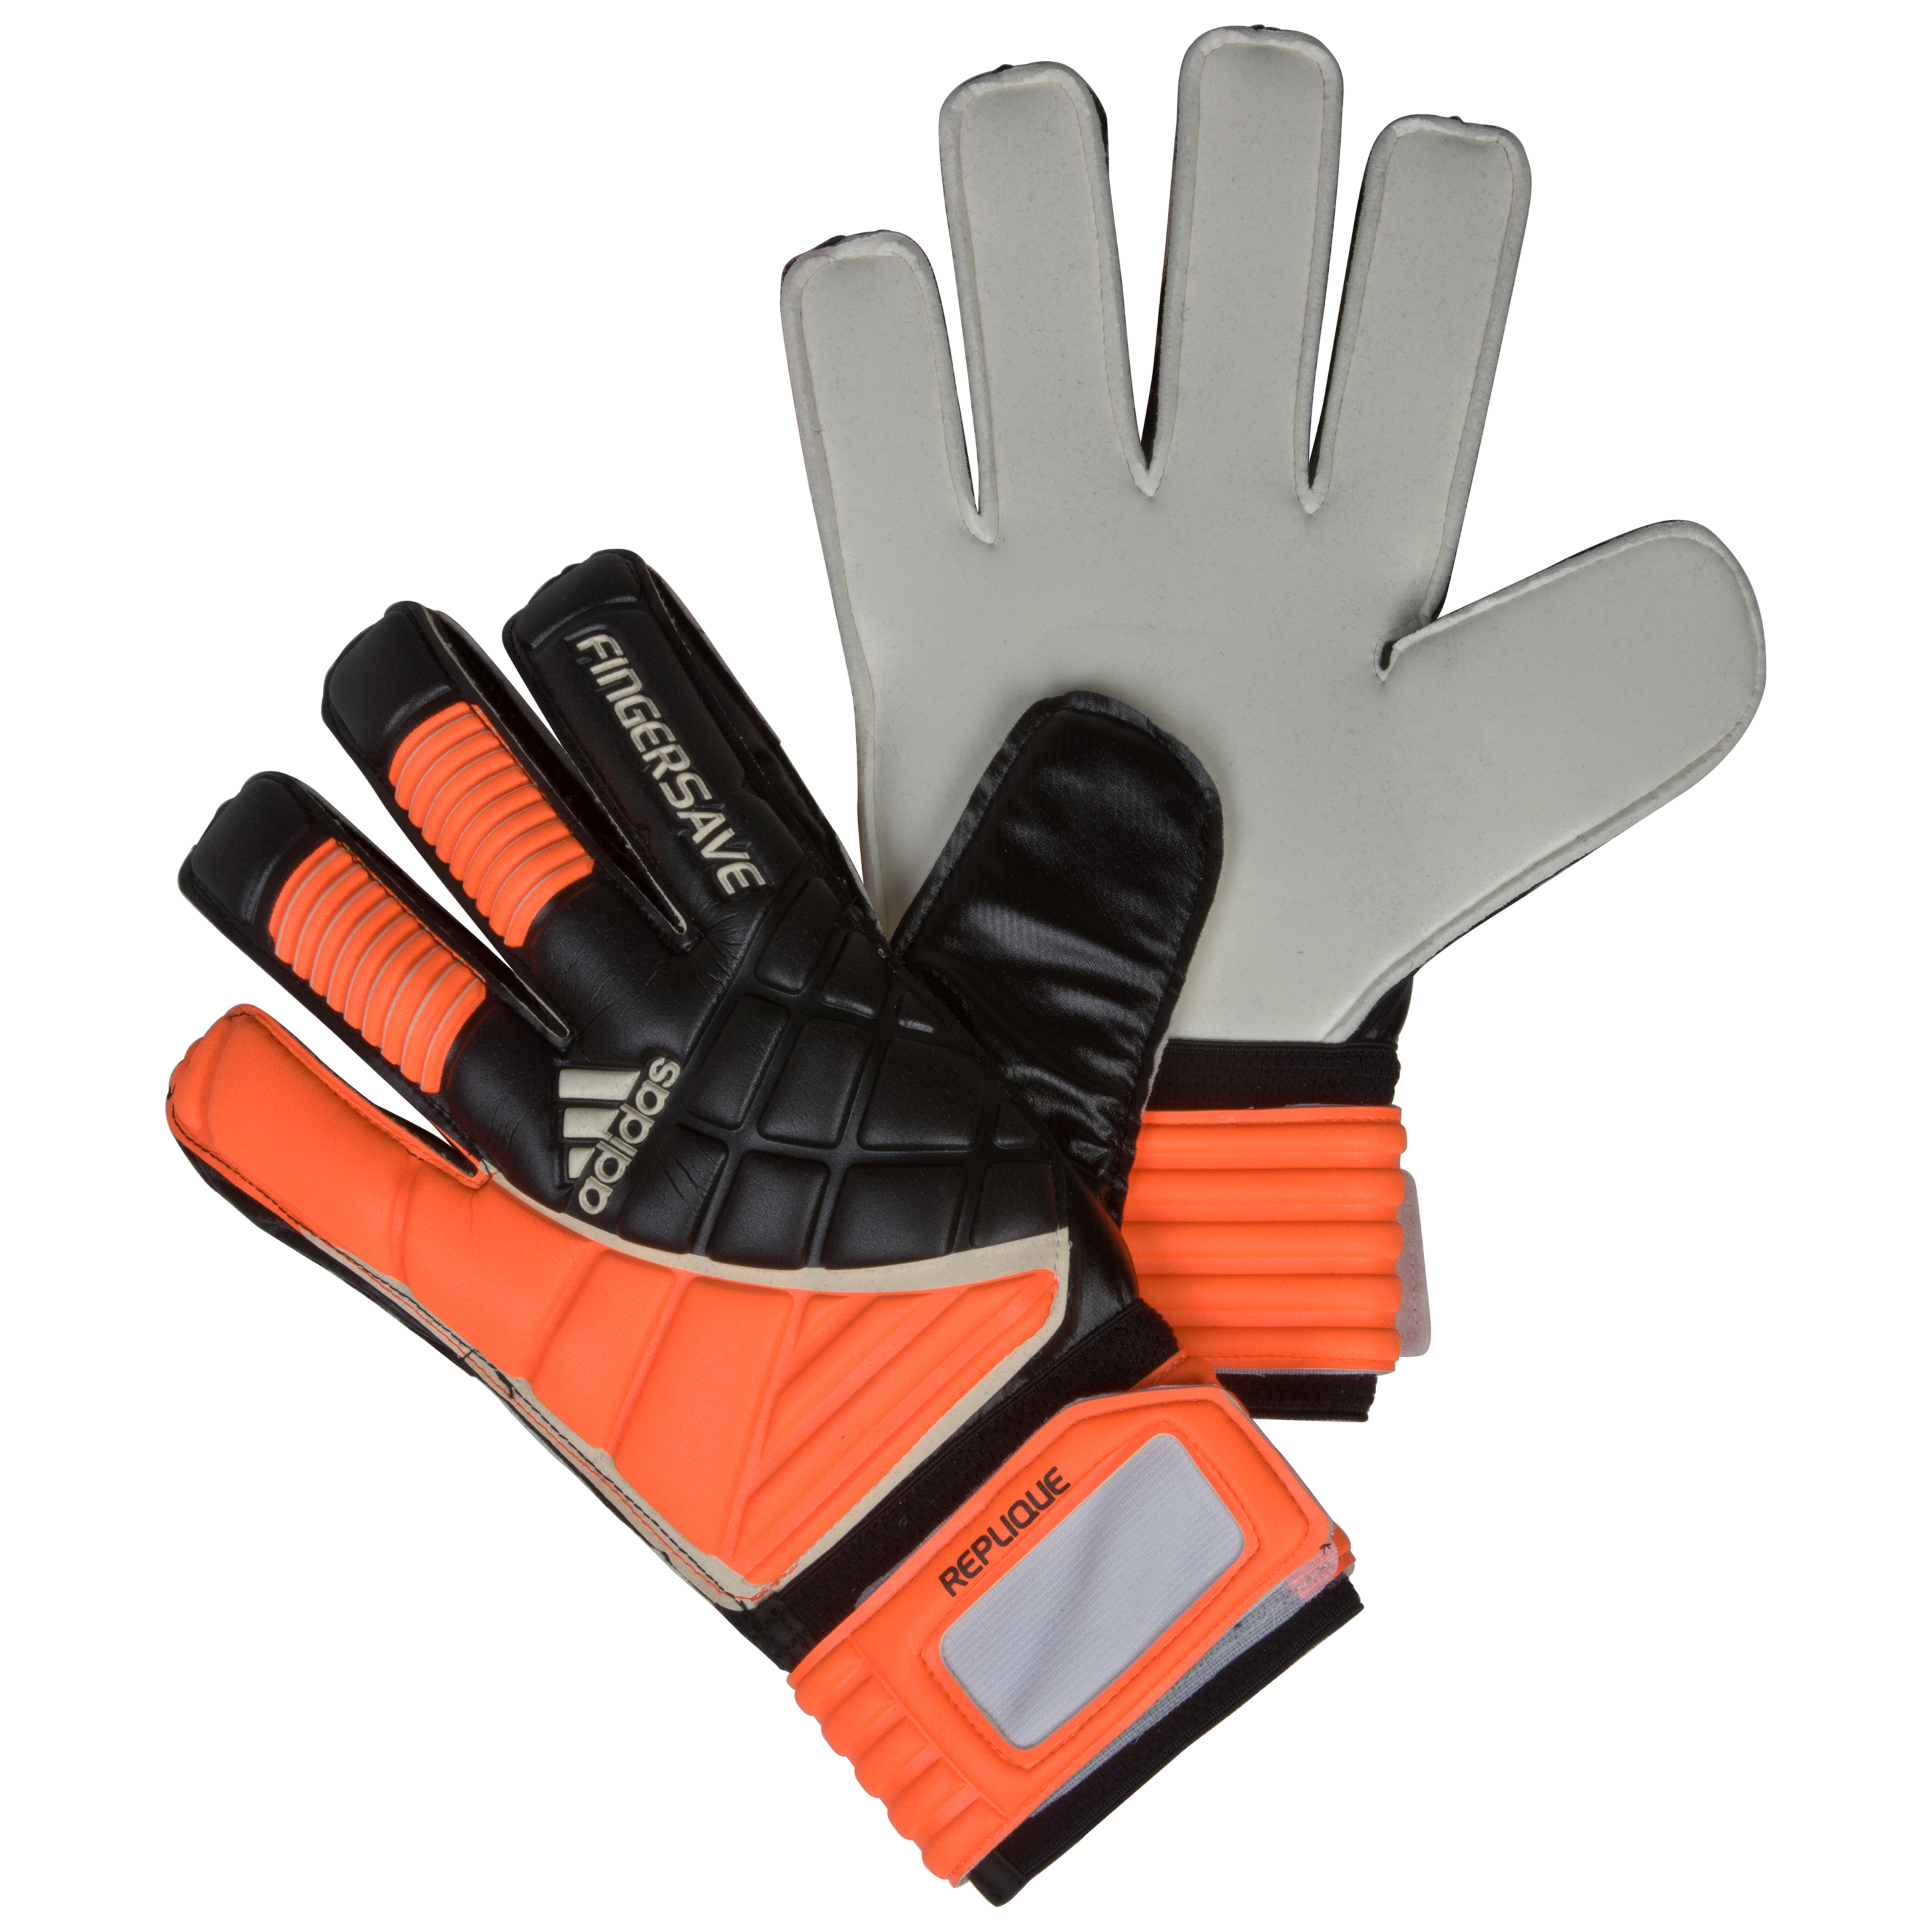 Adidas Finger Save Replique Goalkeeper Gloves - Black/Warning/White